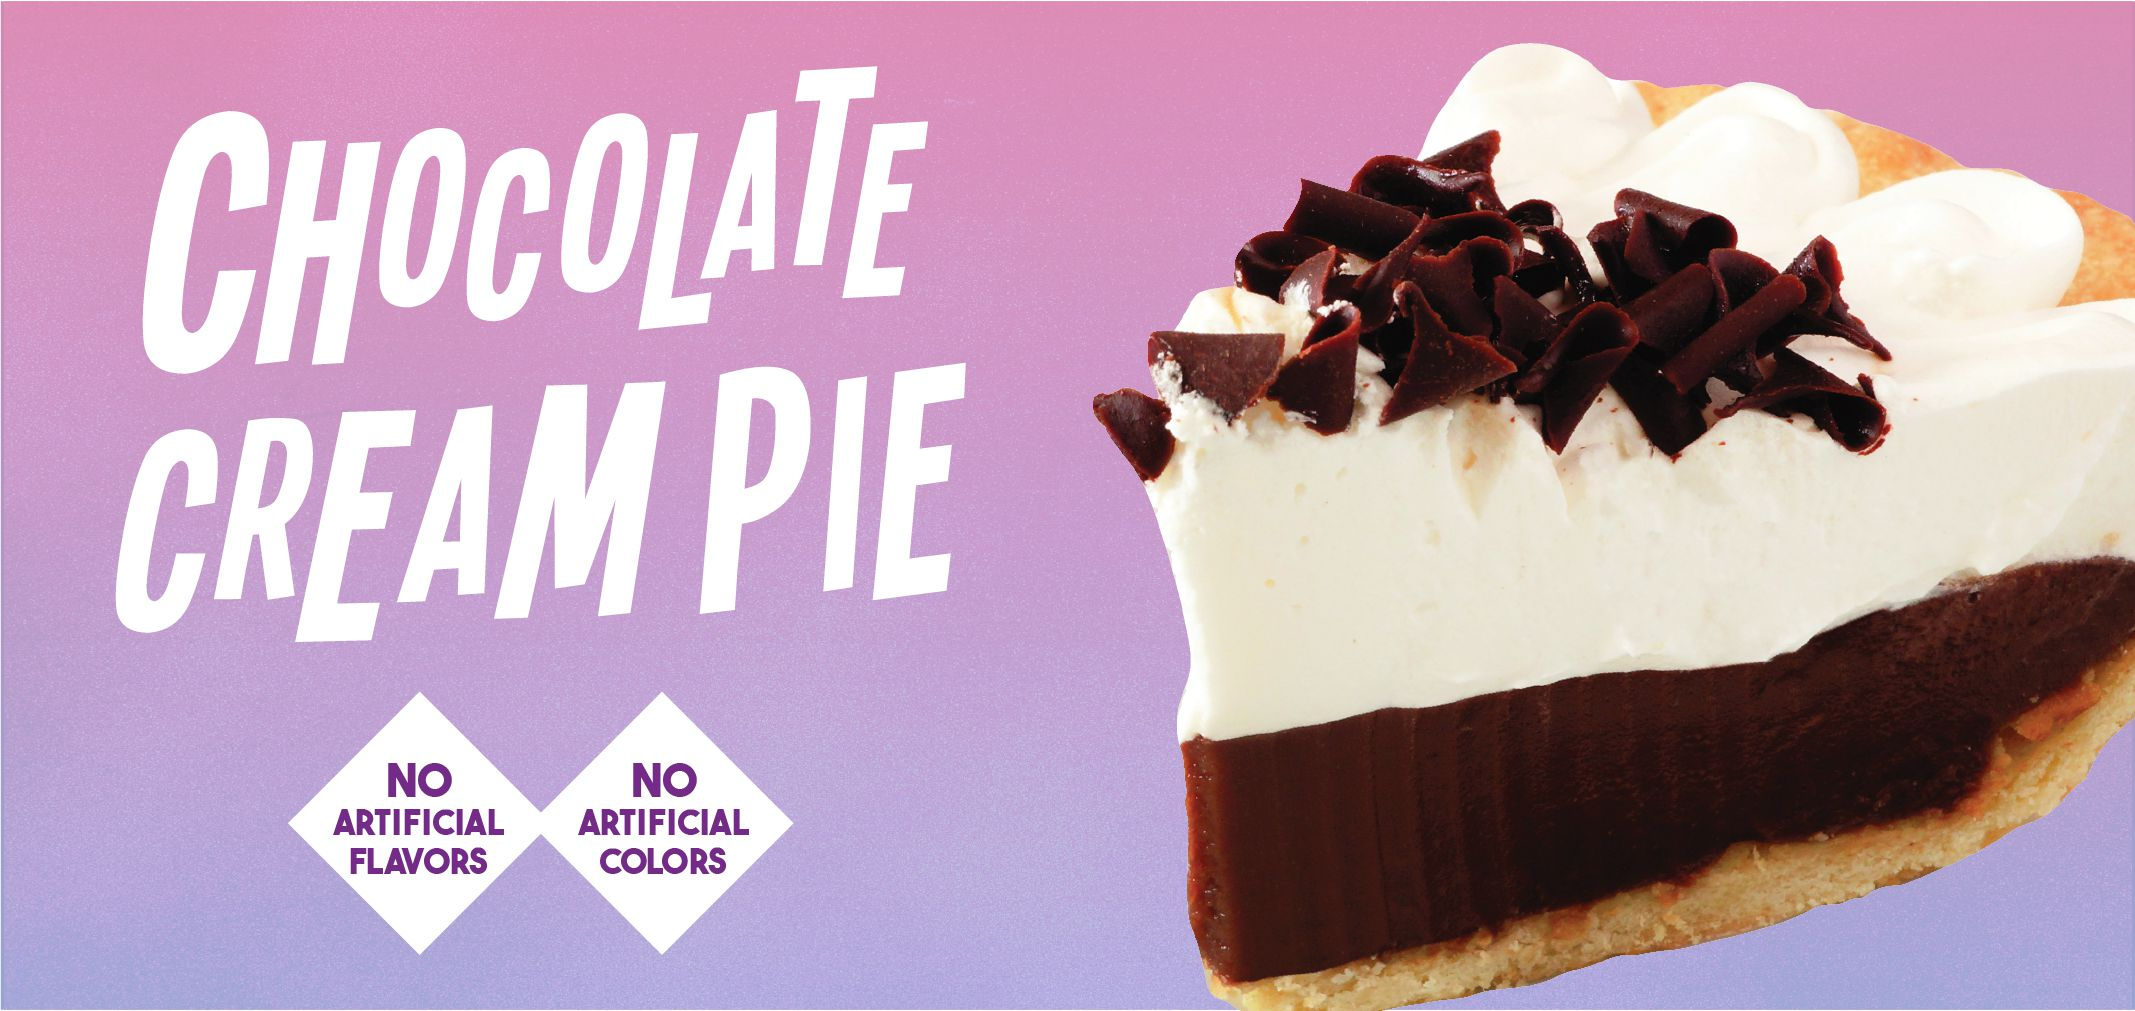 chocolate cream pie label image